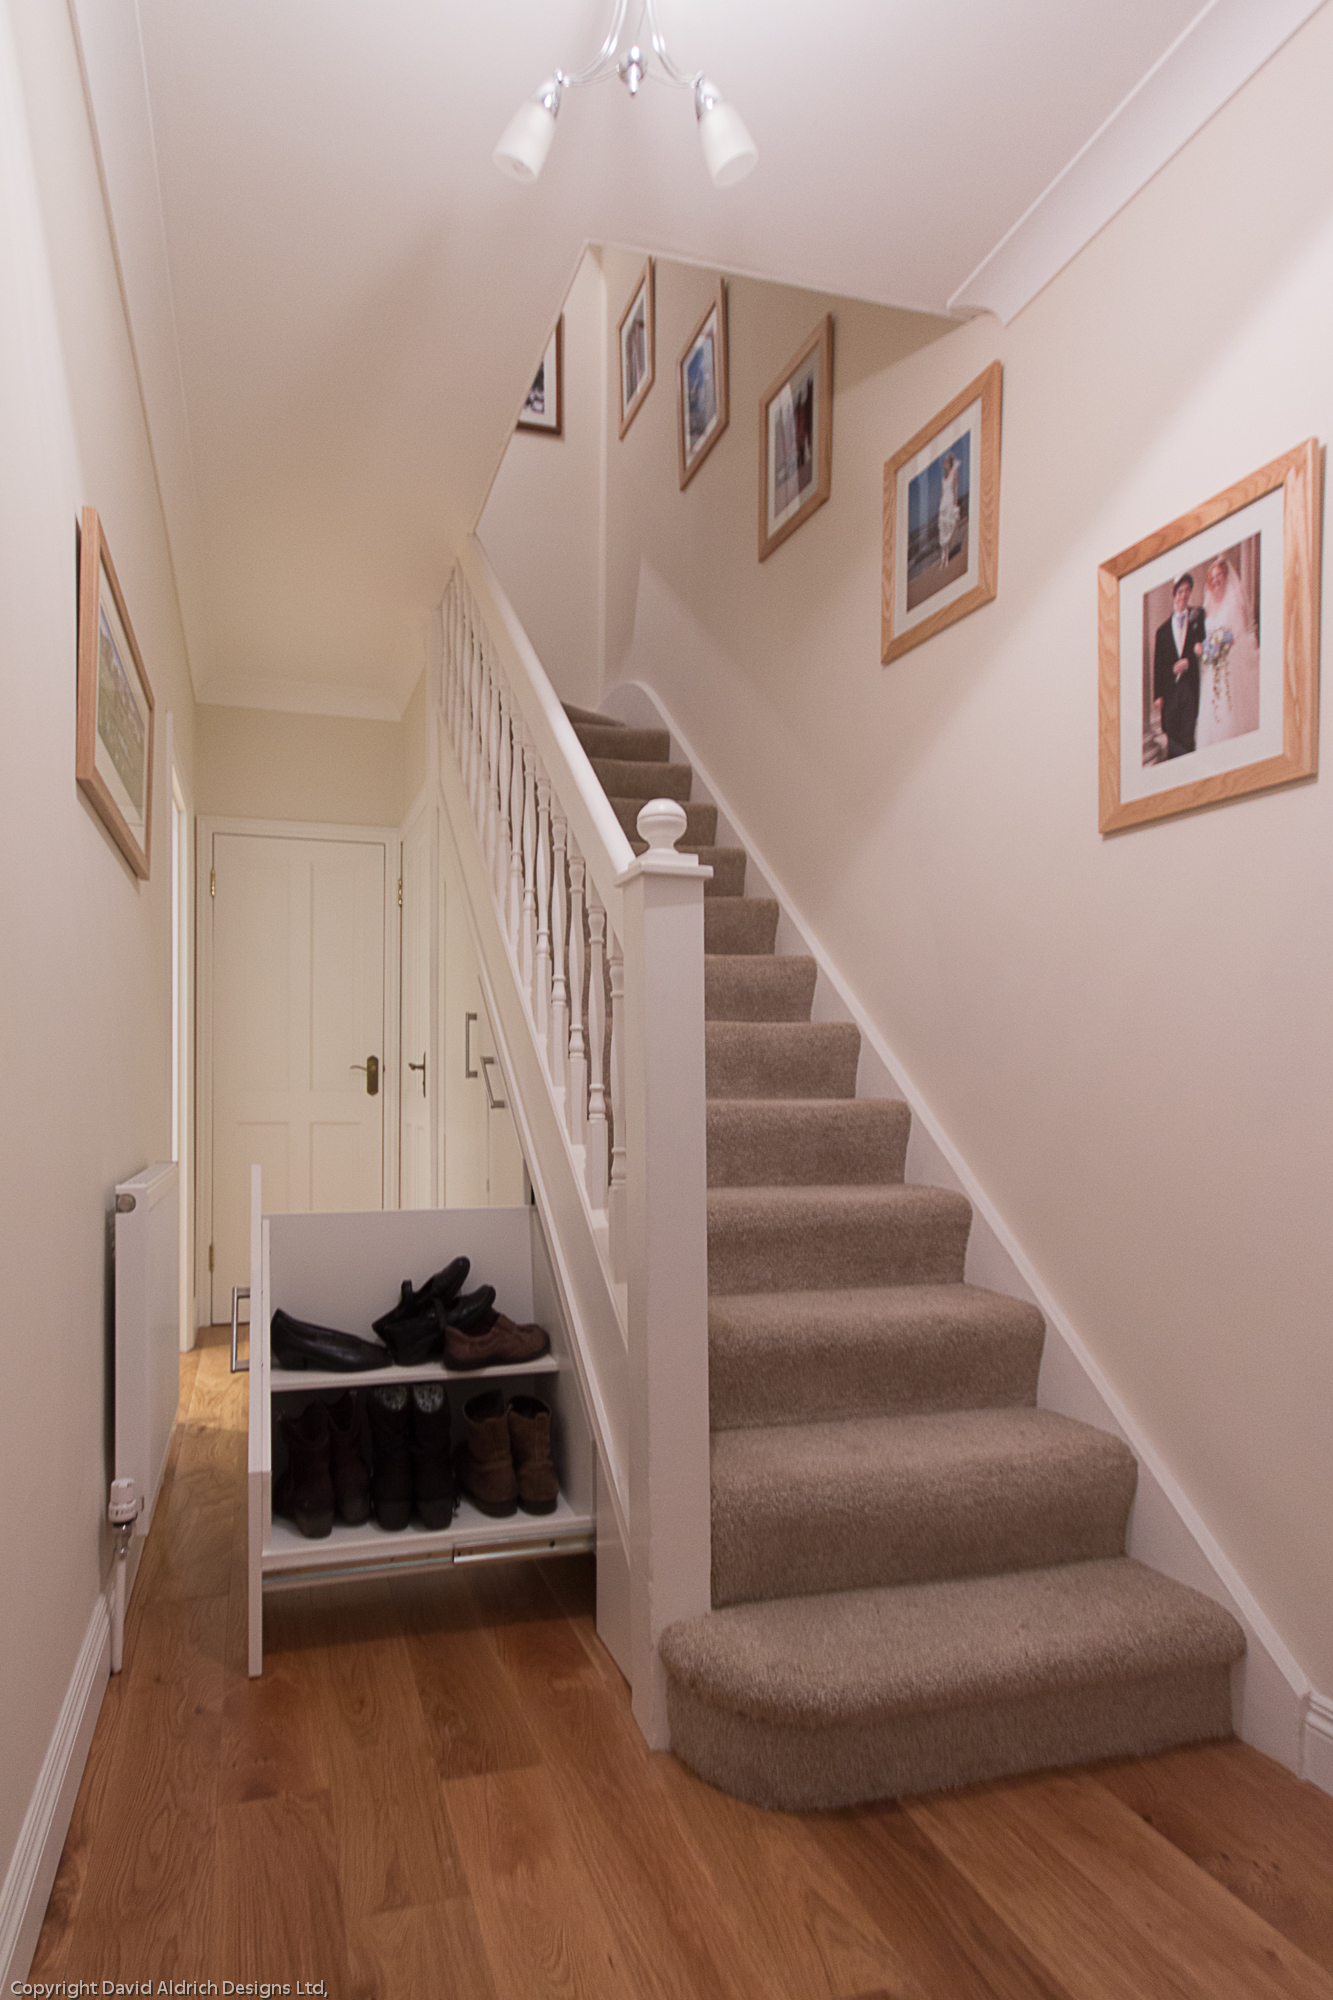 Hallway storage solutions London (2 of 4).jpg